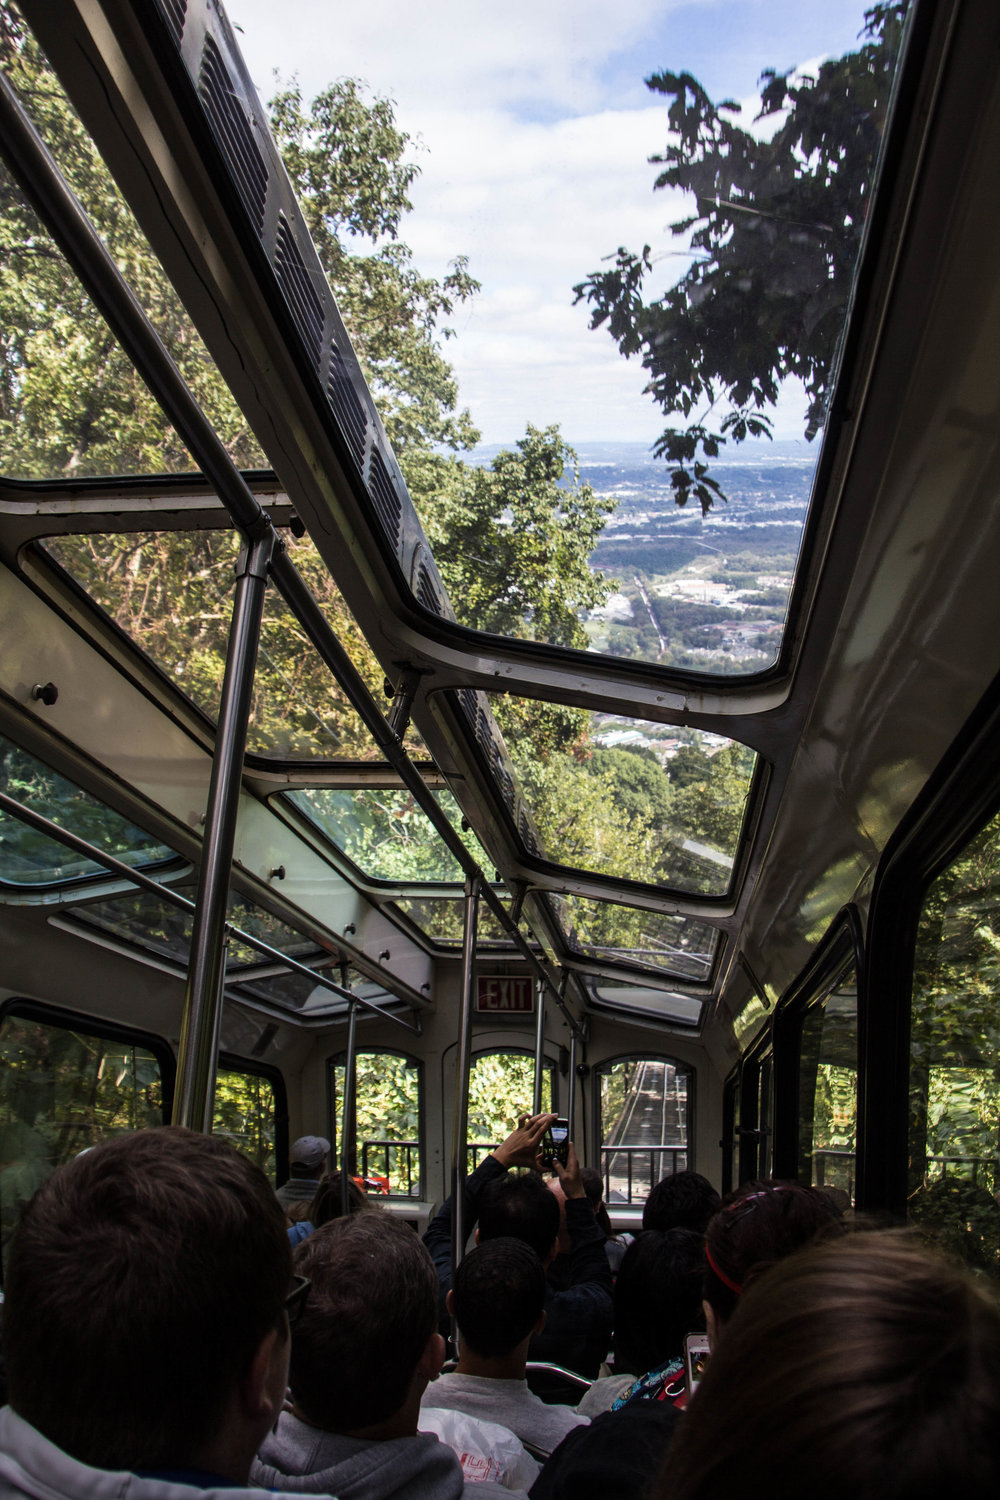 chattanooga-incline-railway-10.jpg